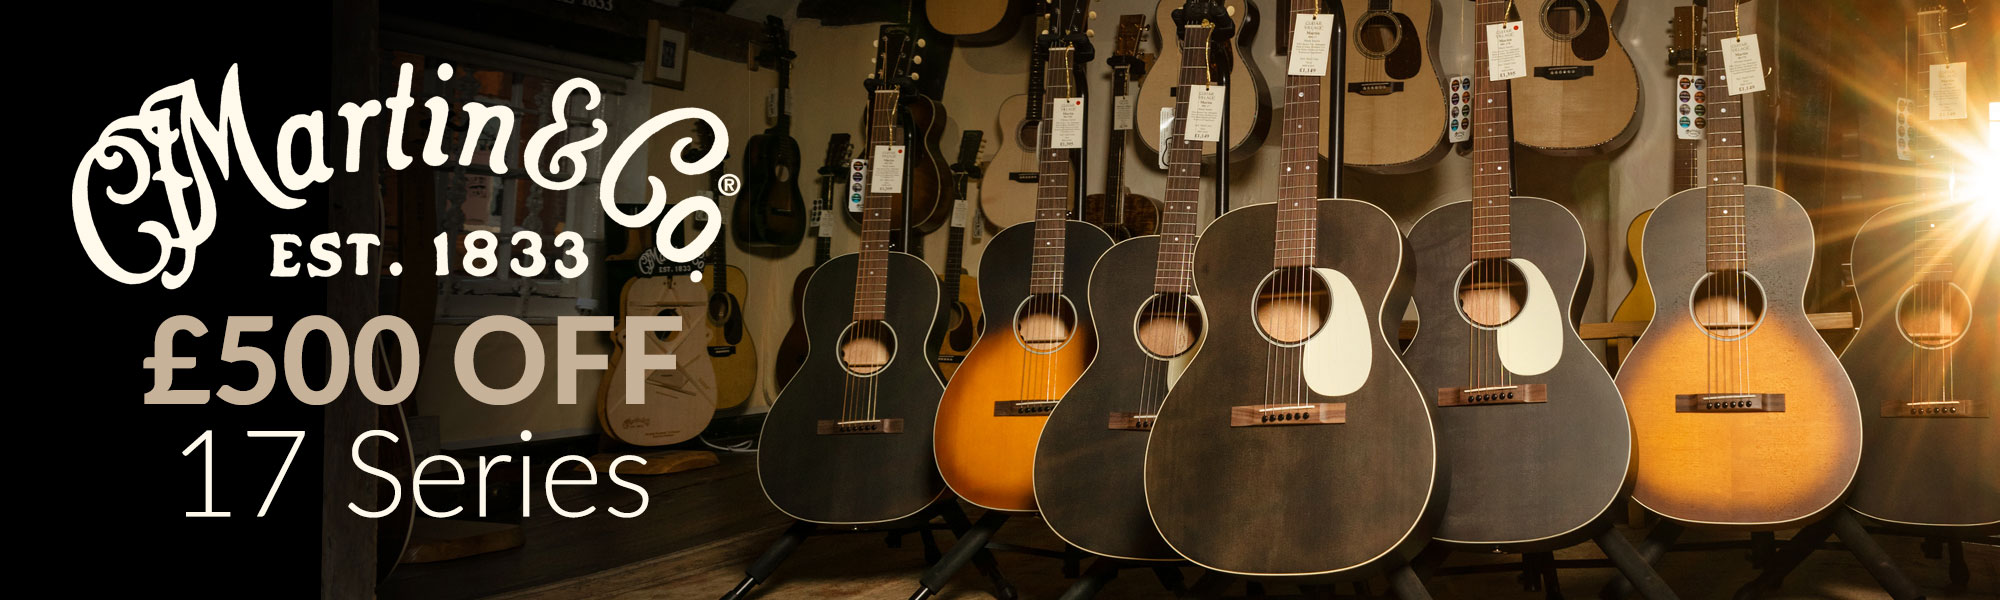 Guitar shop UK | Over 1,000 guitars in stock